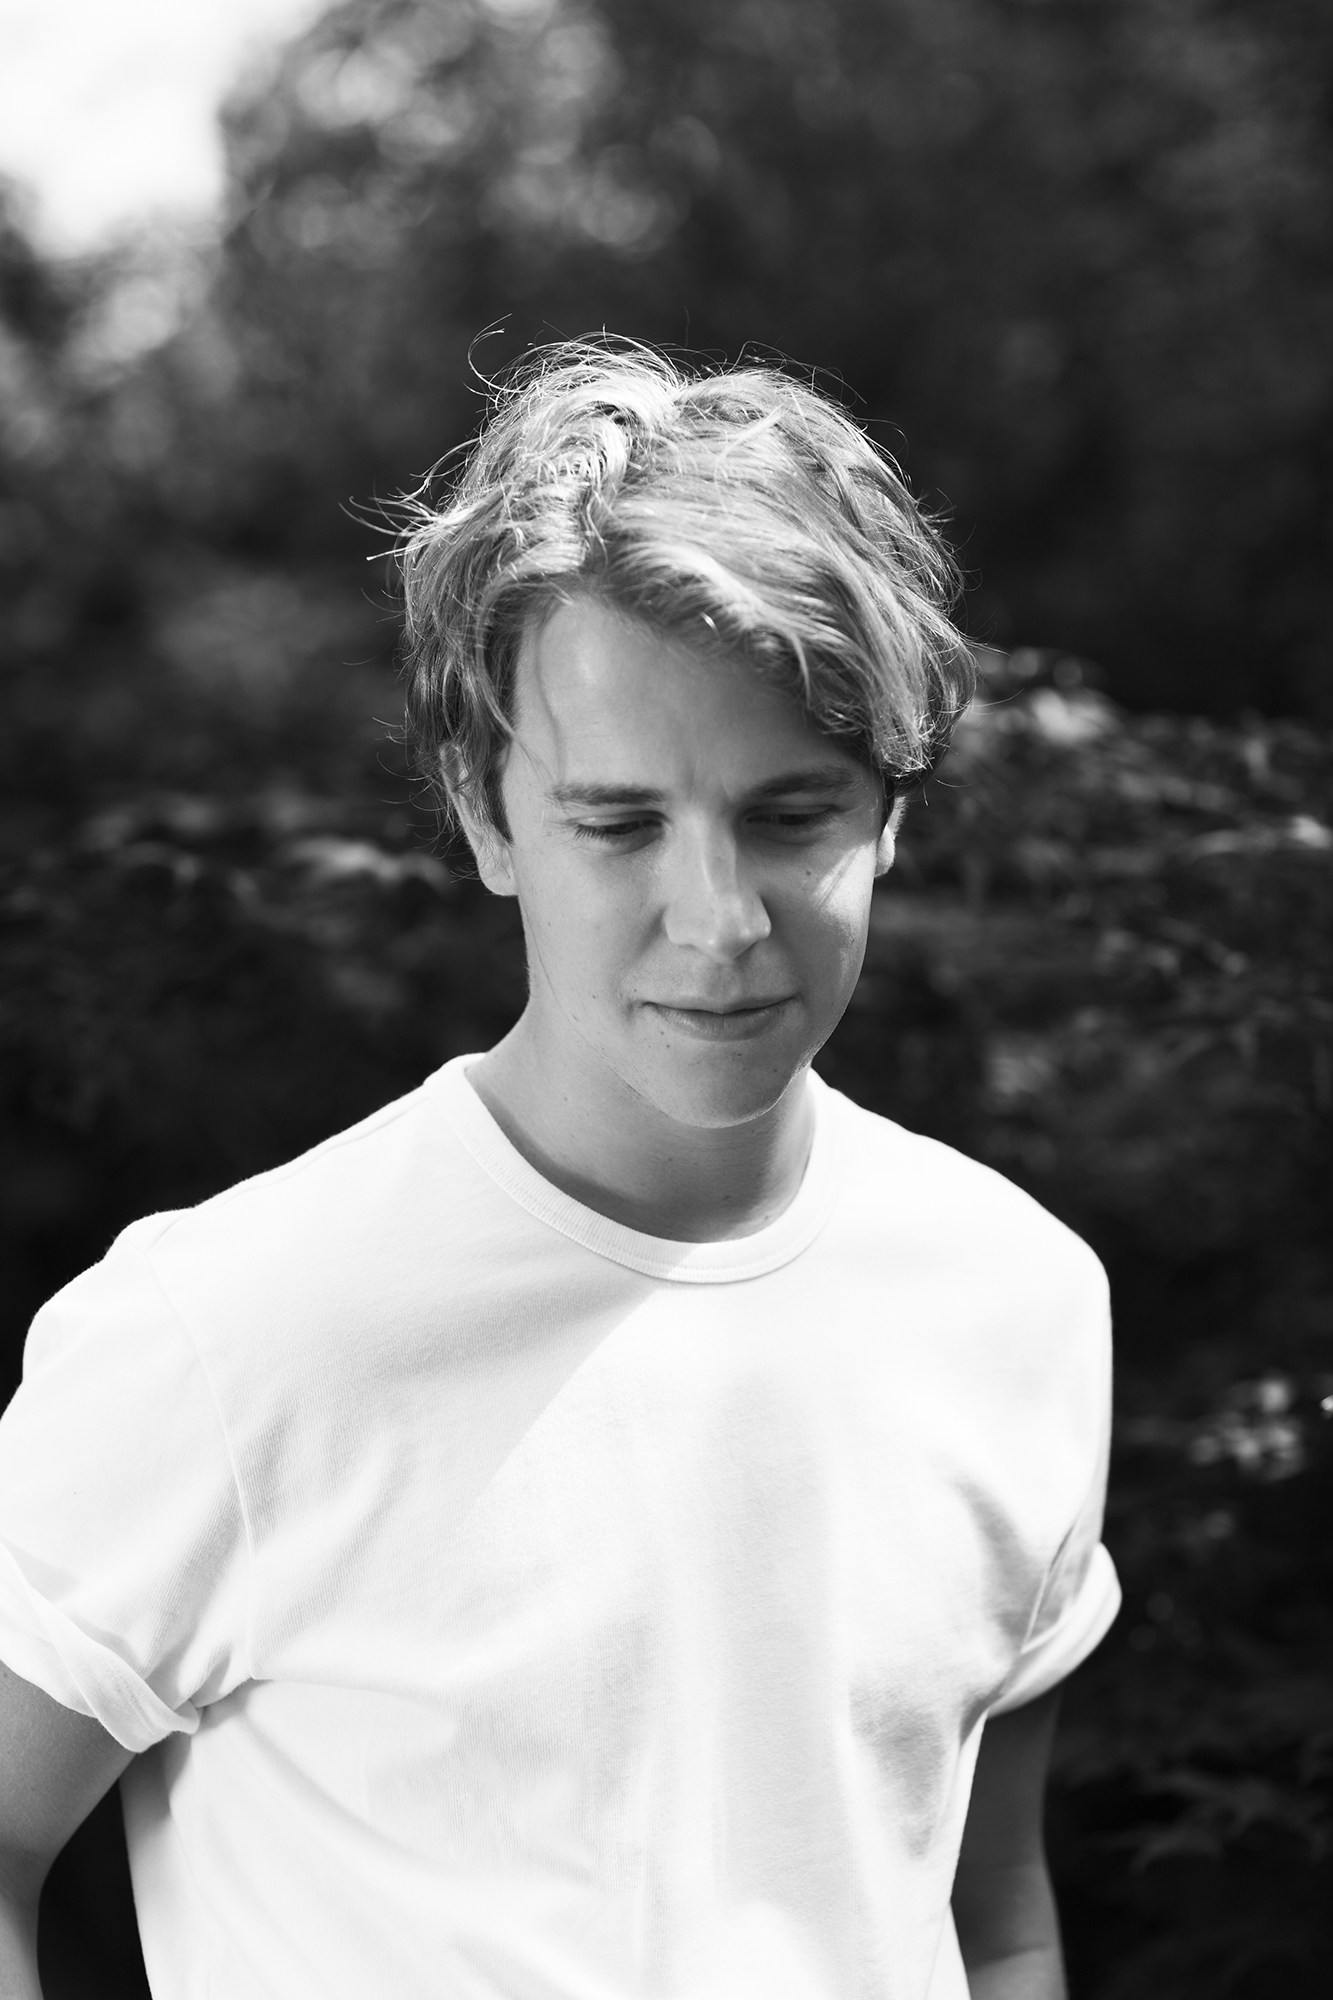 TomOdell_0070_HR.jpg